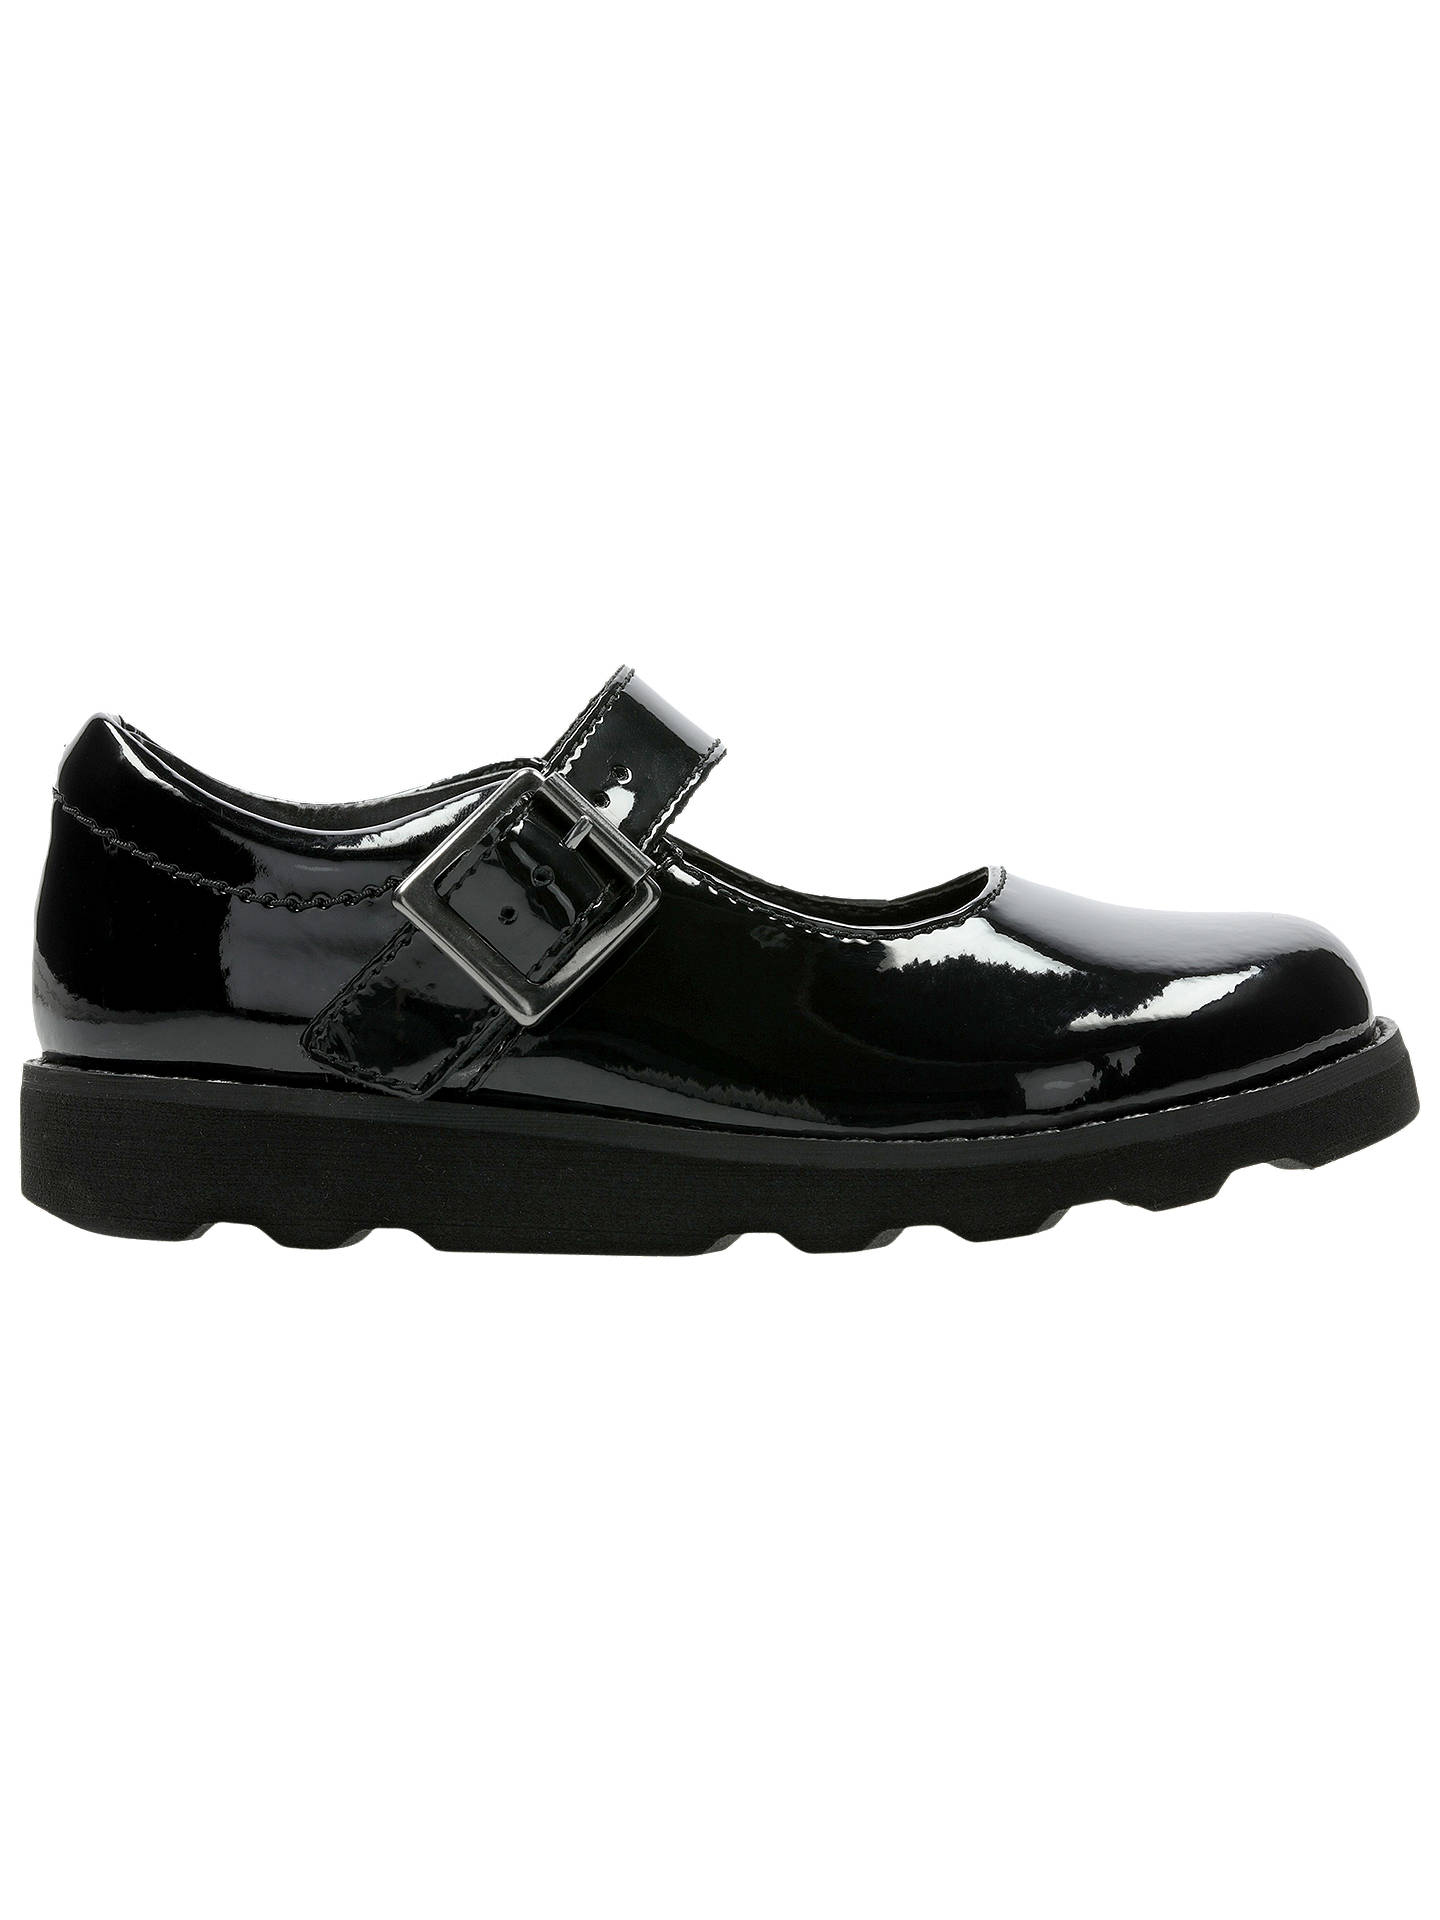 5a0f86dfa95 Buy Clarks Children s Crown Honor Buckle Shoes